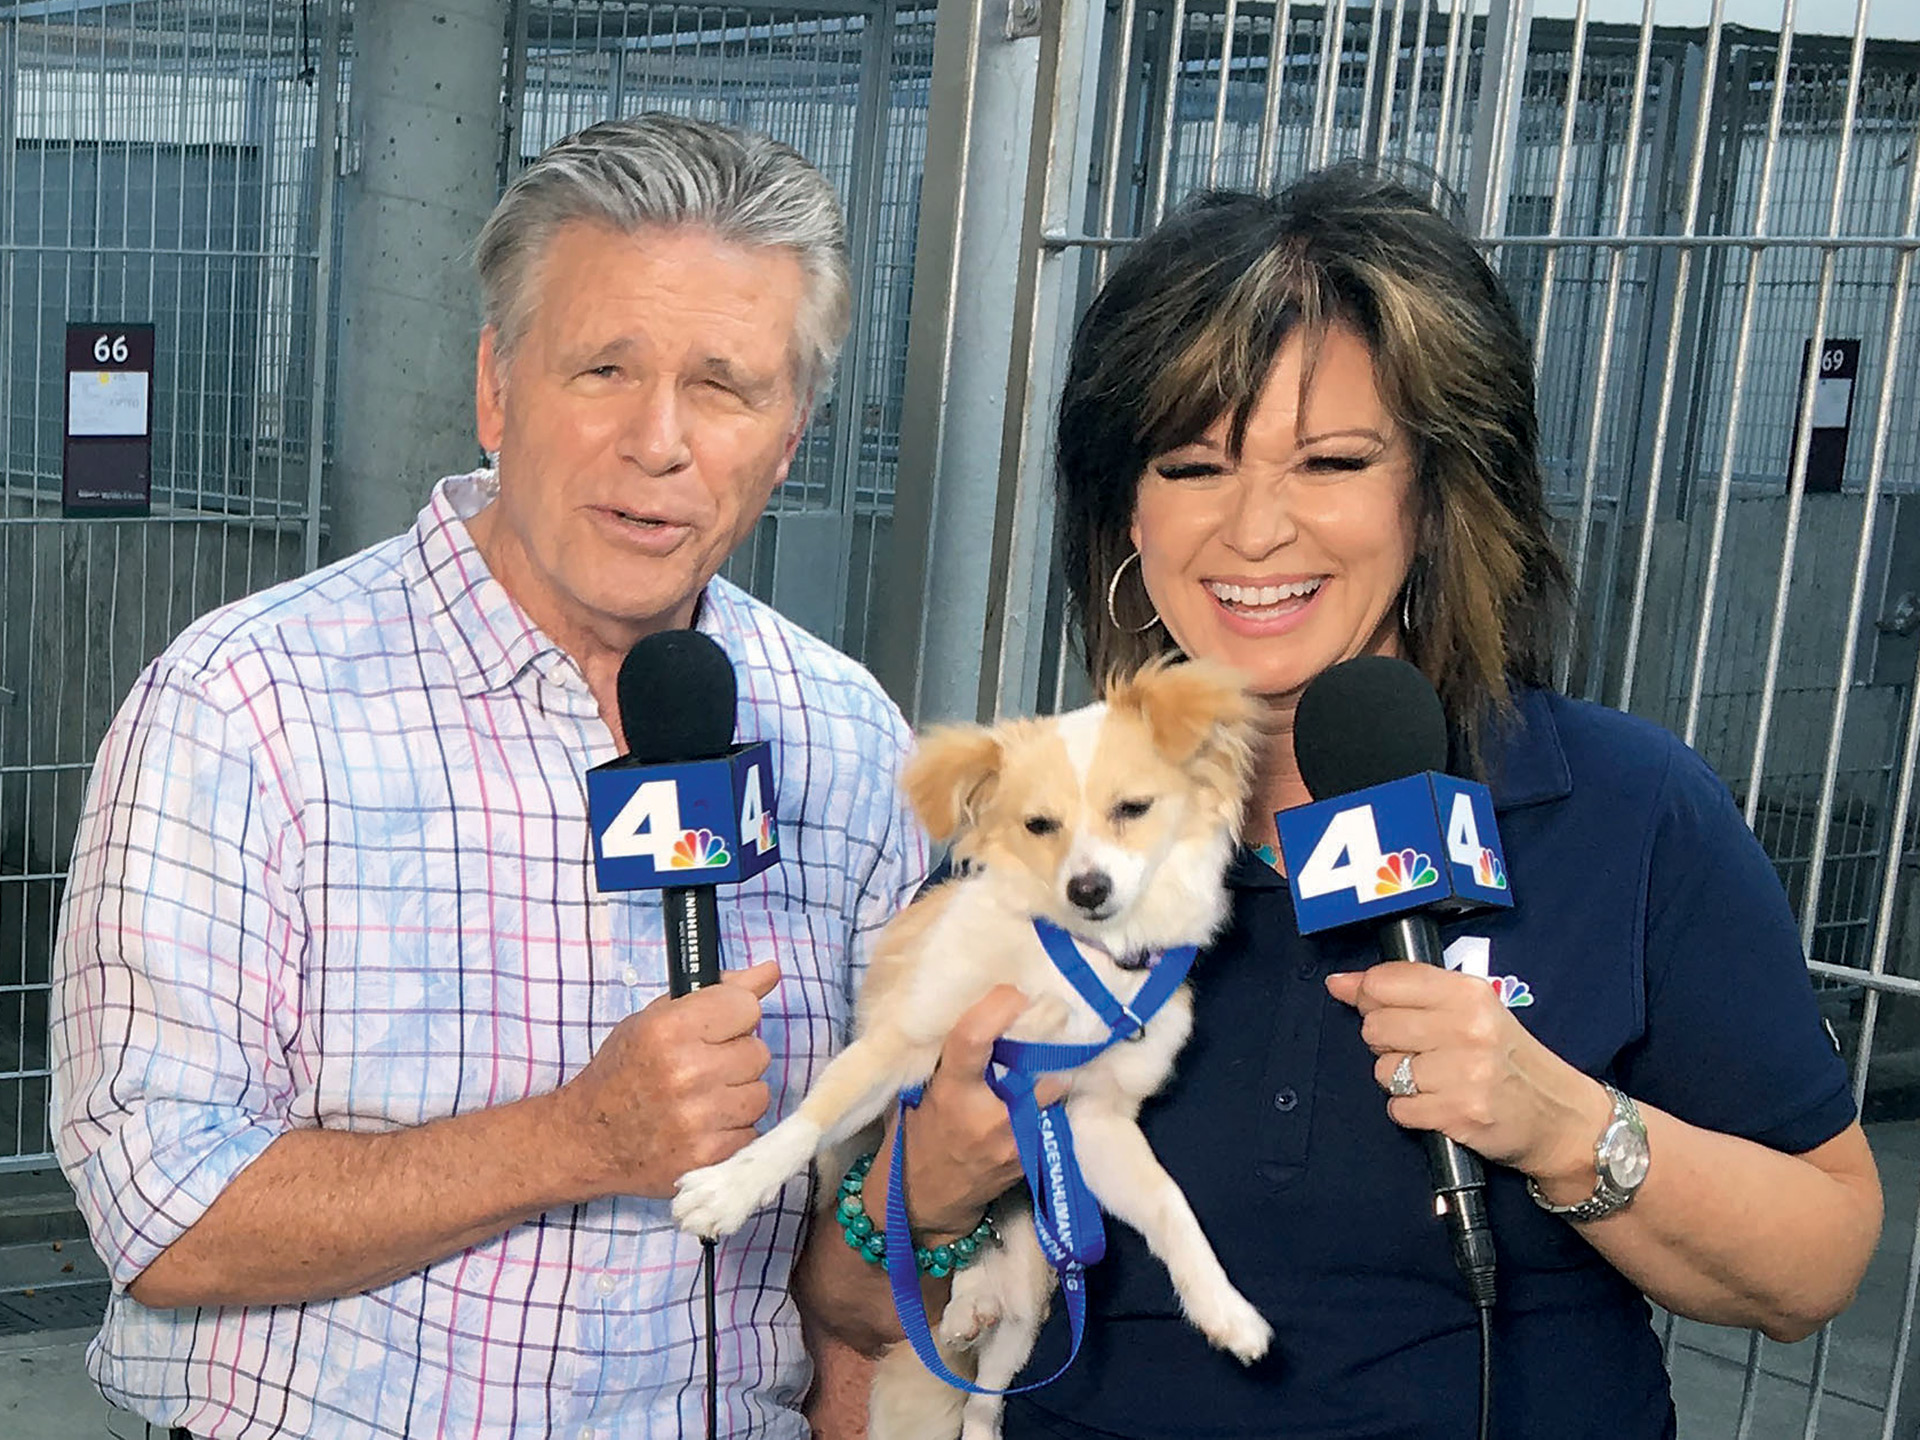 local-anchors-help-clear-the-shelters-4-nbc4-anchors-chuck-henry-colleen-williams